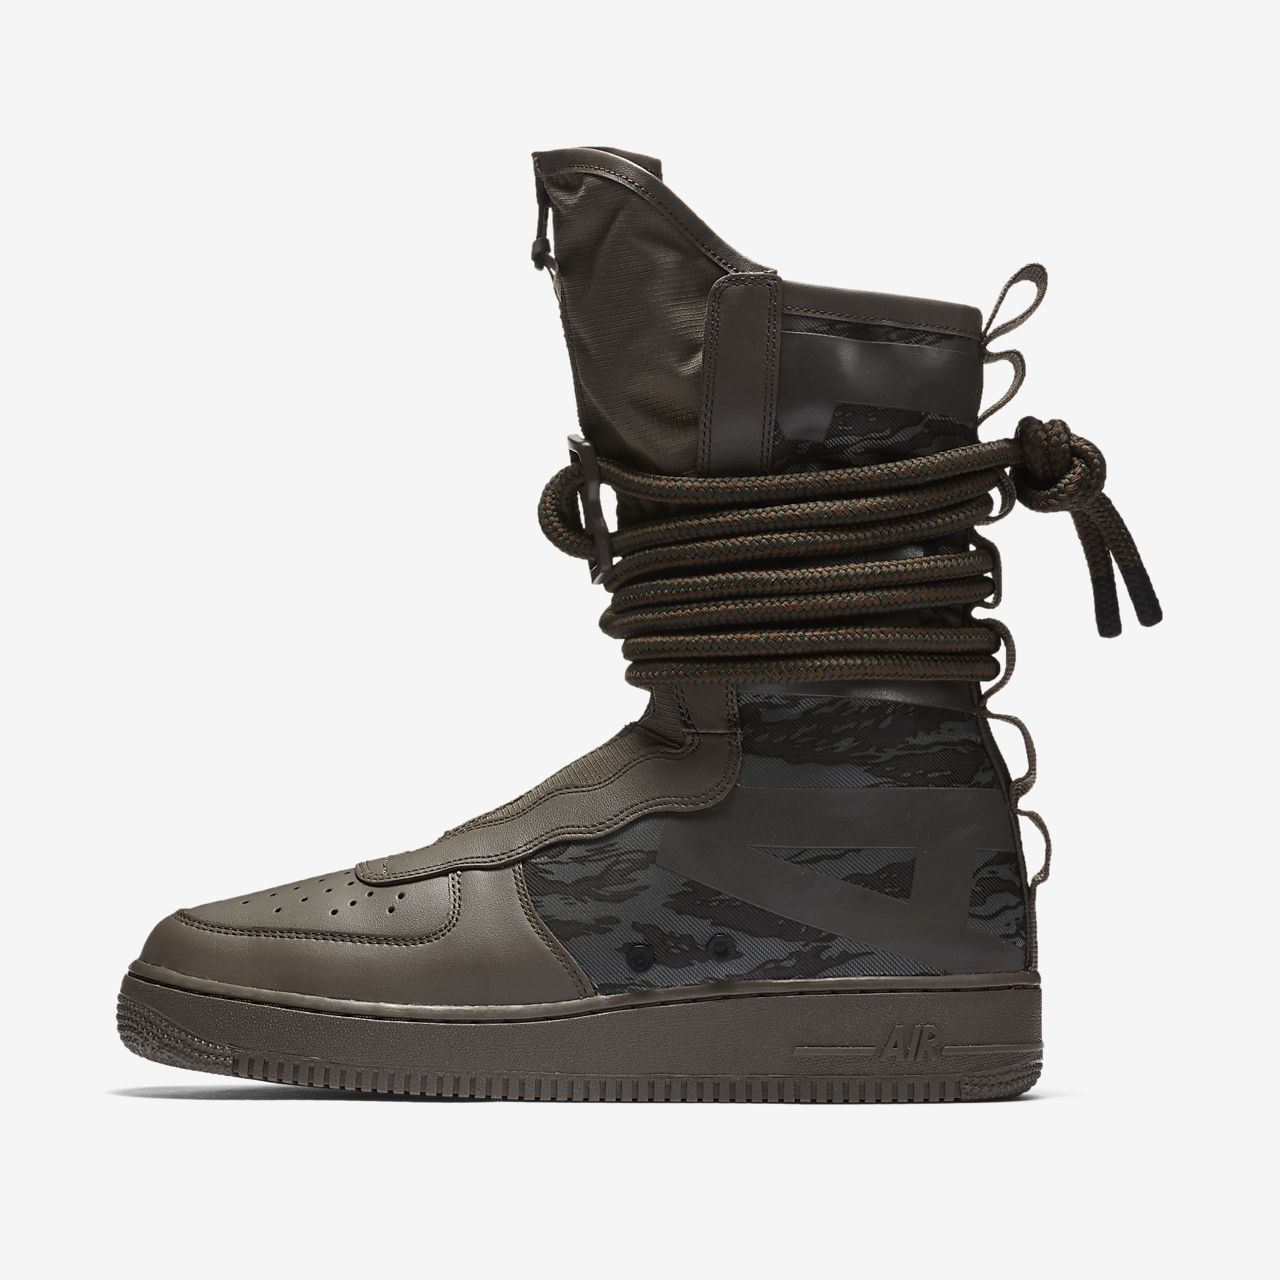 Nike SF Air Force 1 High Men's Boot